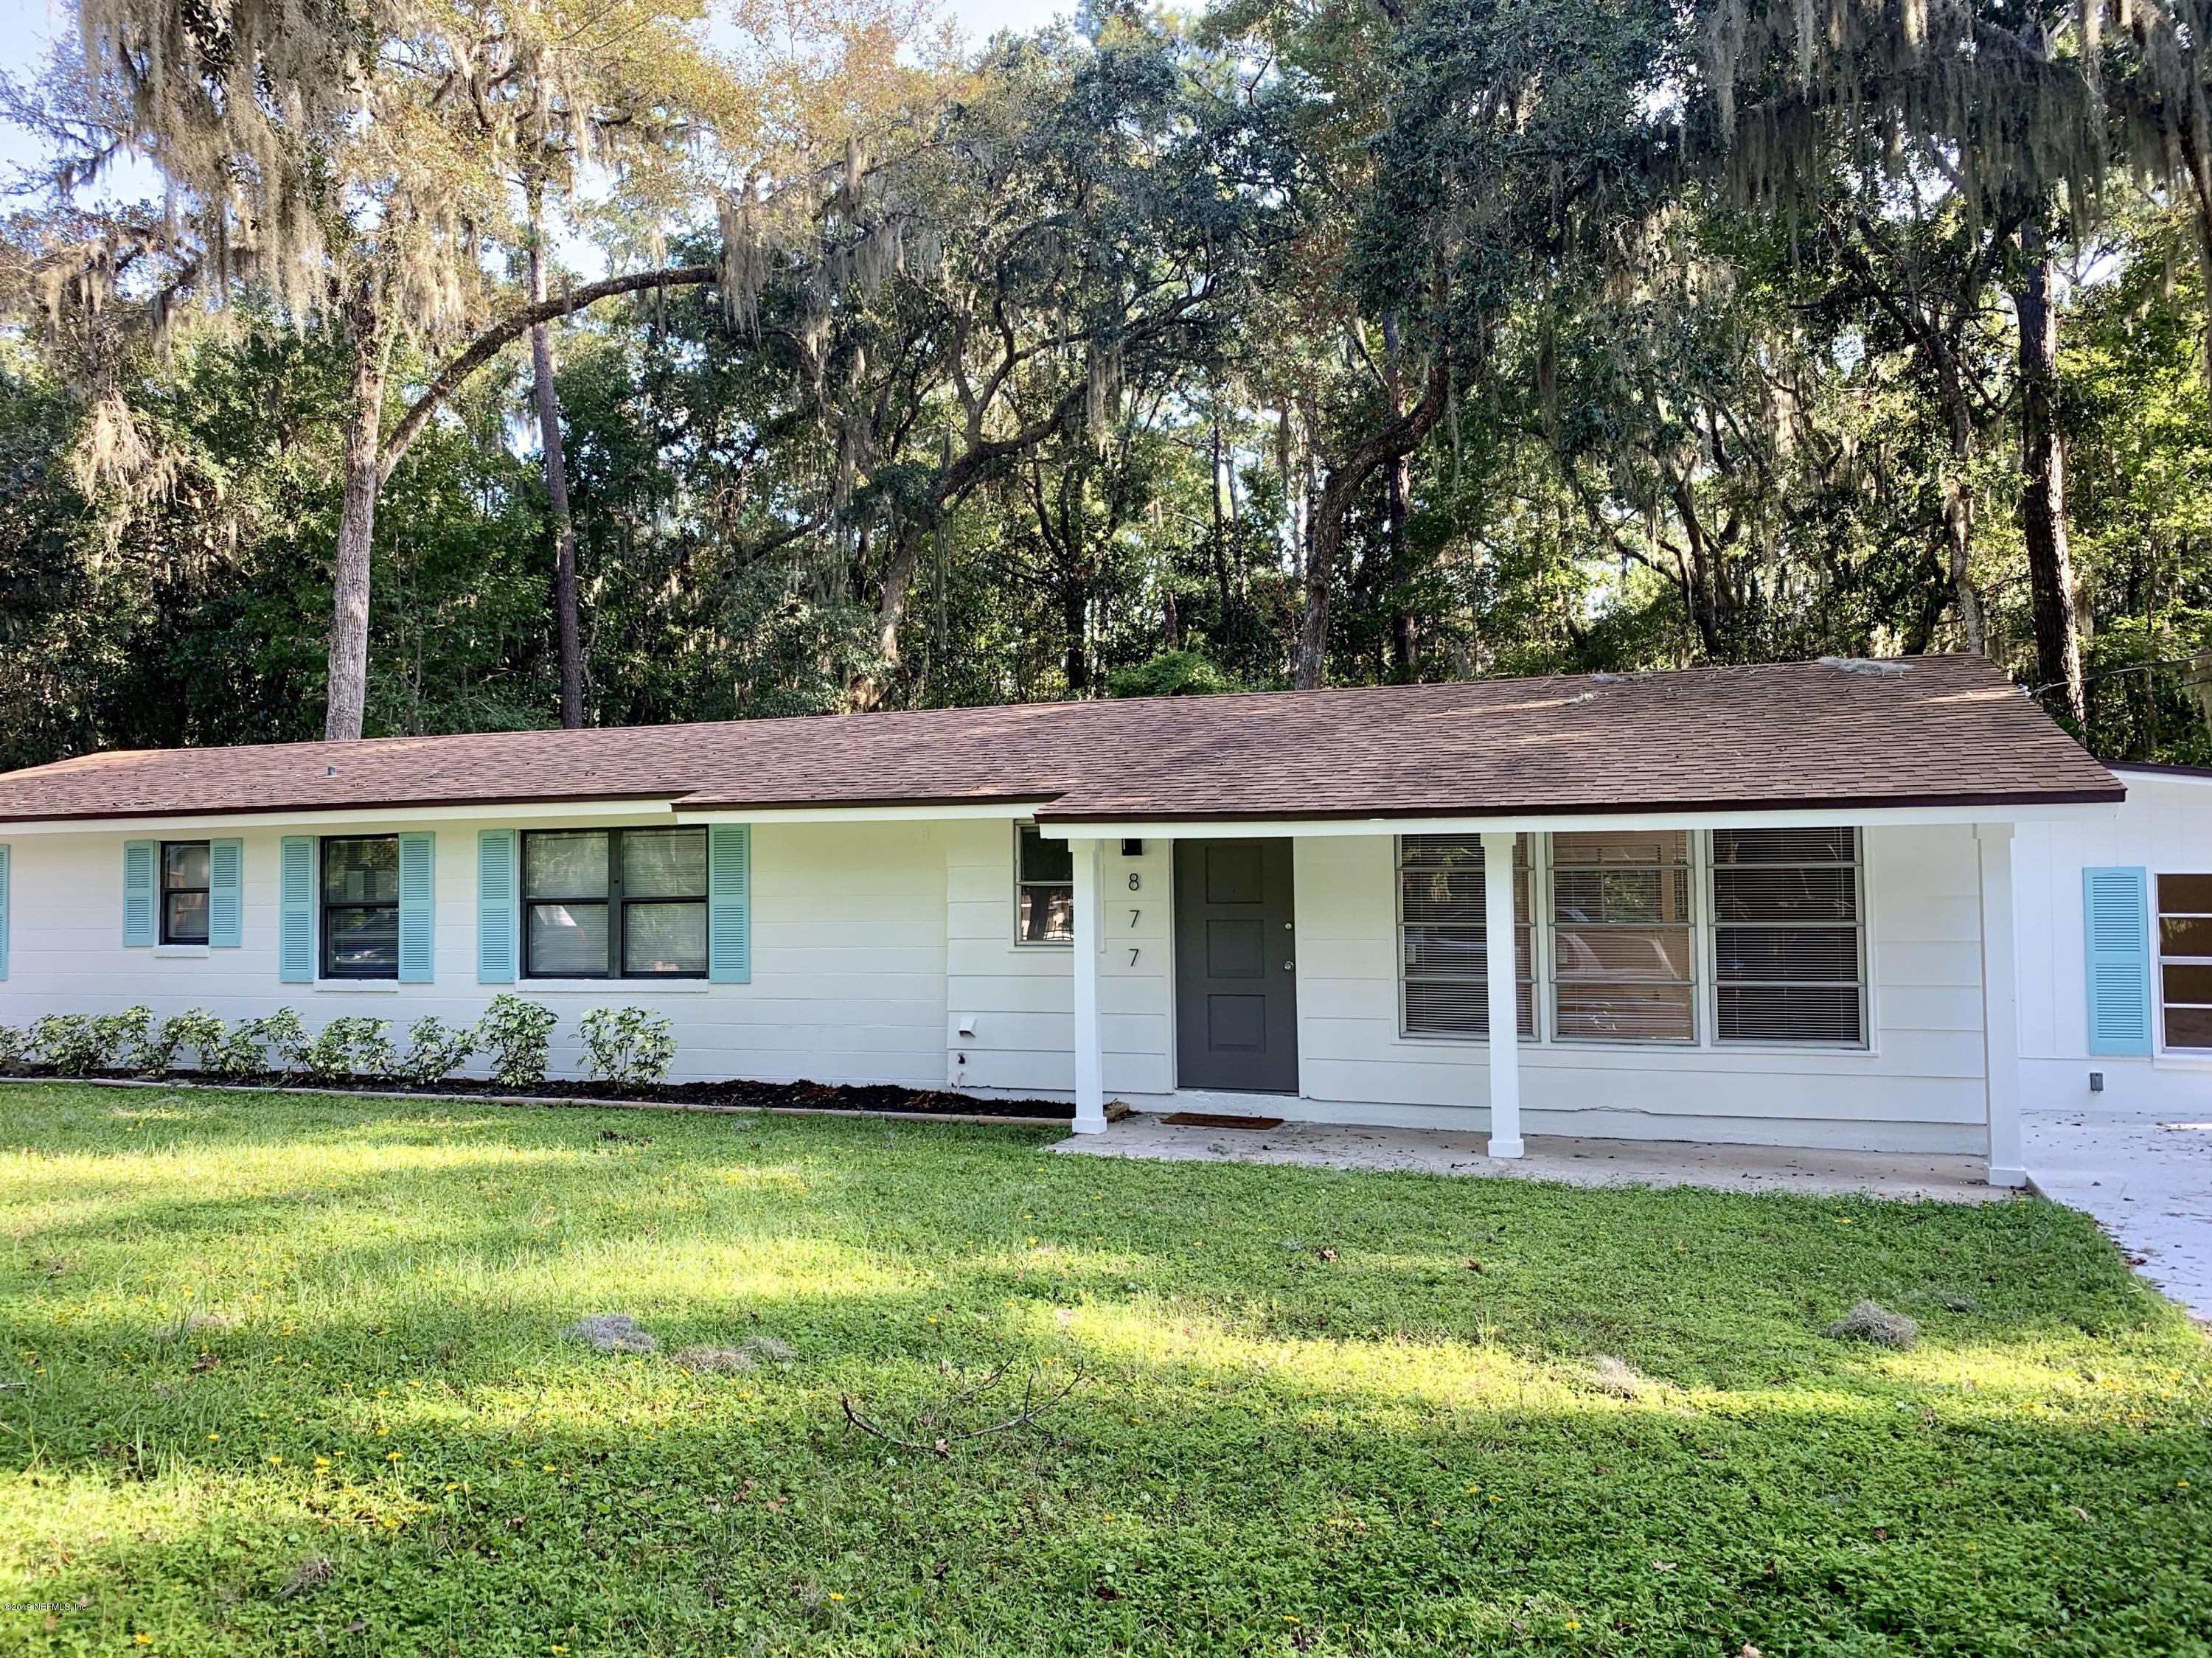 877 CREIGHTON, ORANGE PARK, FLORIDA 32003, 3 Bedrooms Bedrooms, ,2 BathroomsBathrooms,Rental,For sale,CREIGHTON,1015022